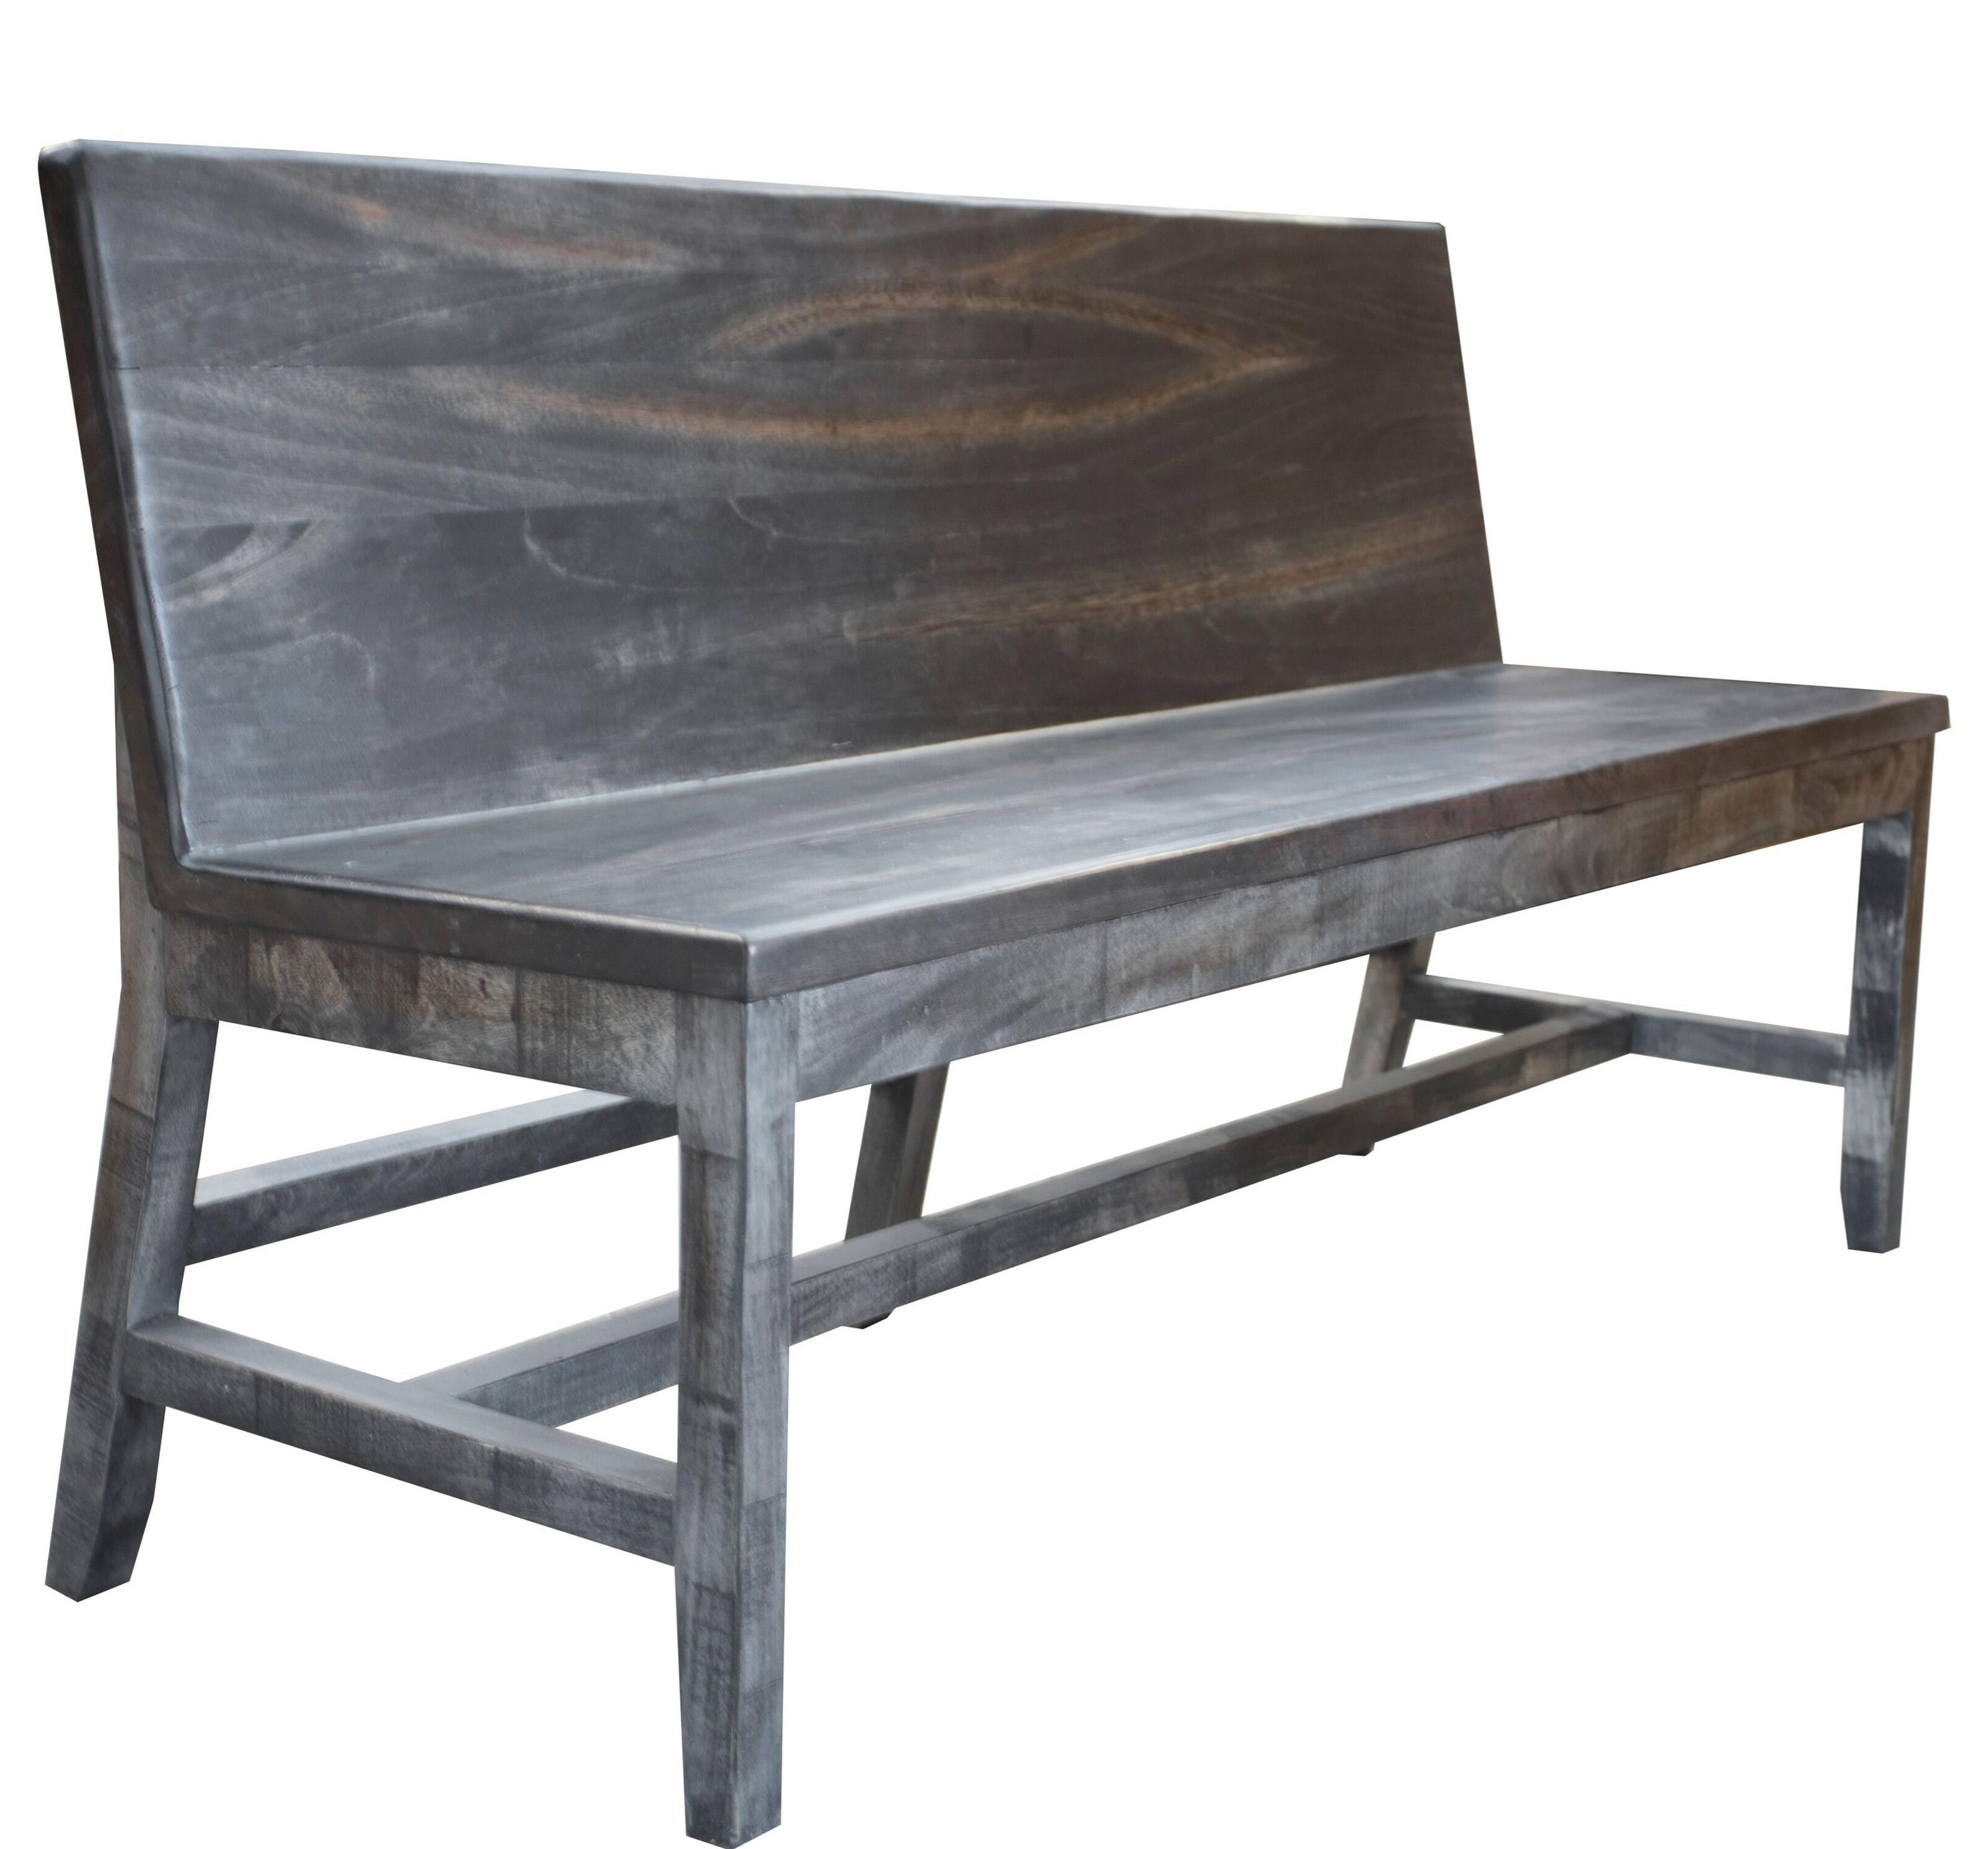 Phenomenal Moro Solid Wood Bench With Back Rest Alphanode Cool Chair Designs And Ideas Alphanodeonline